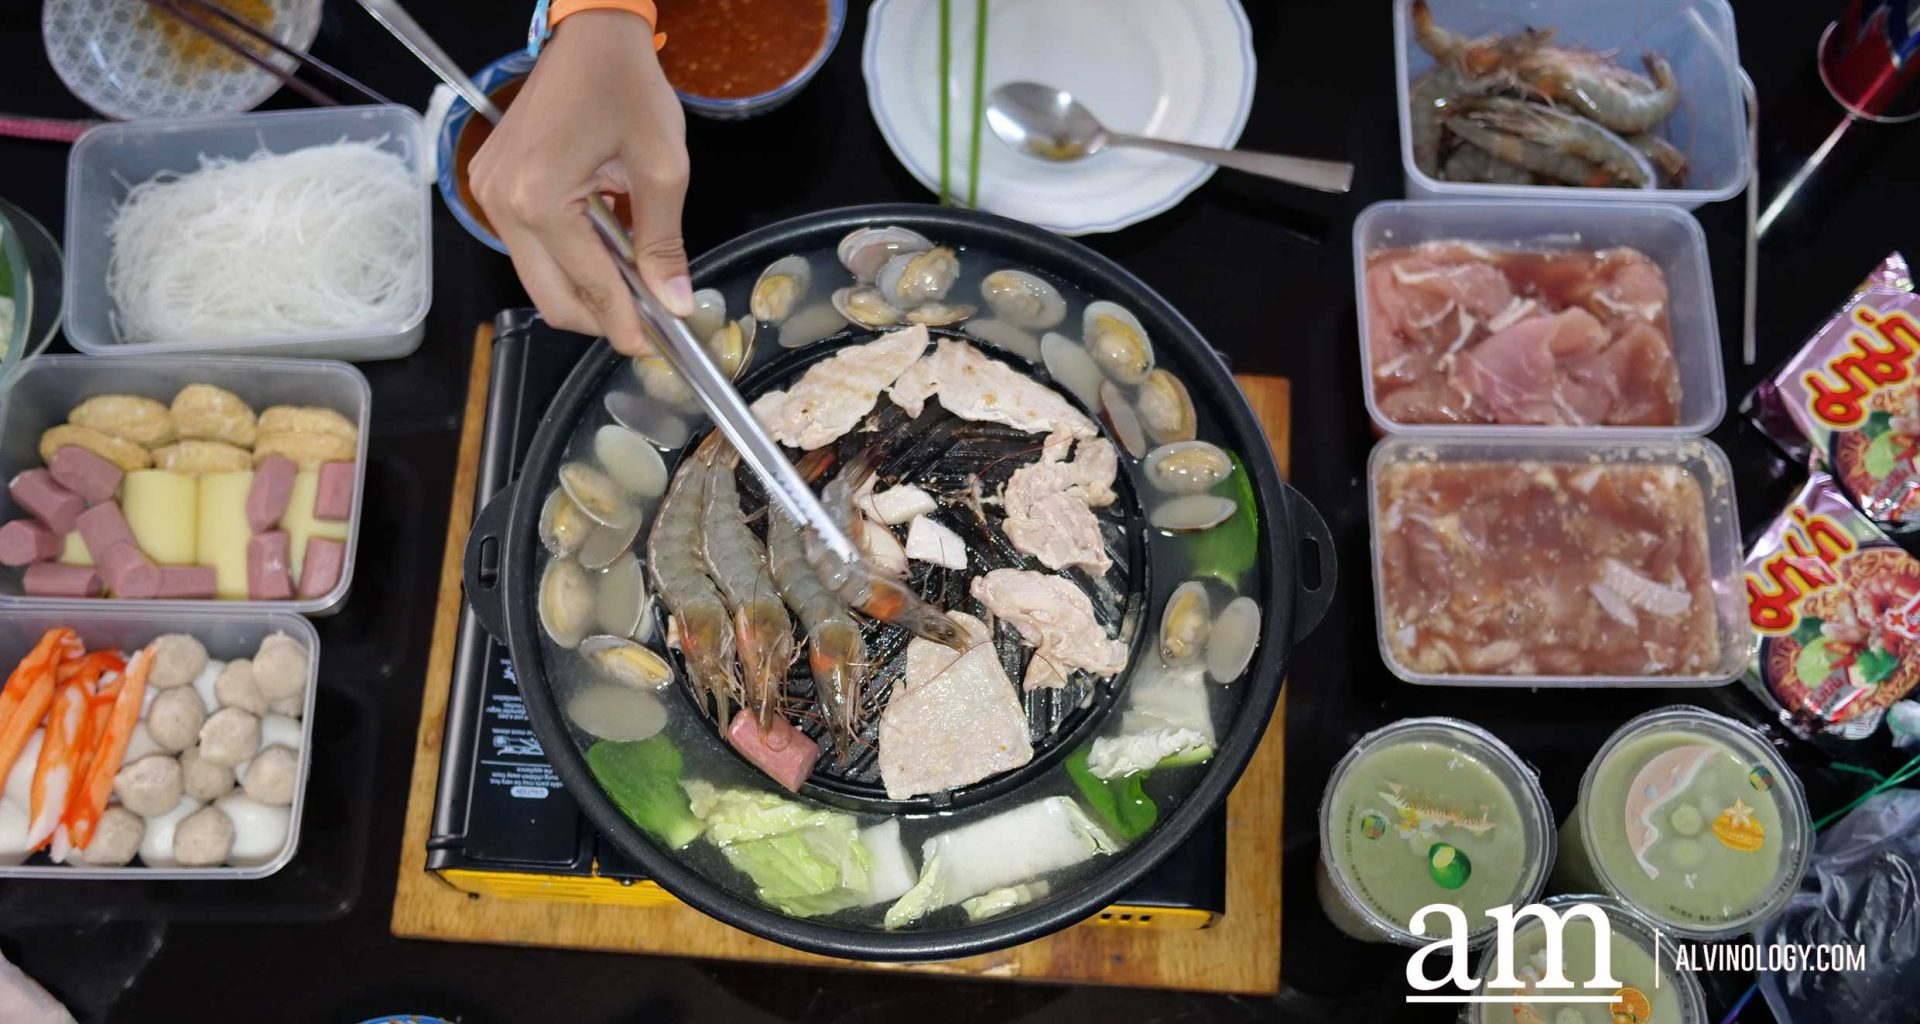 Mookata and beancurd delivered to your home Together? Now possible with new parternership between Siam Square Mookata and Rochor Beancurd House - Alvinology